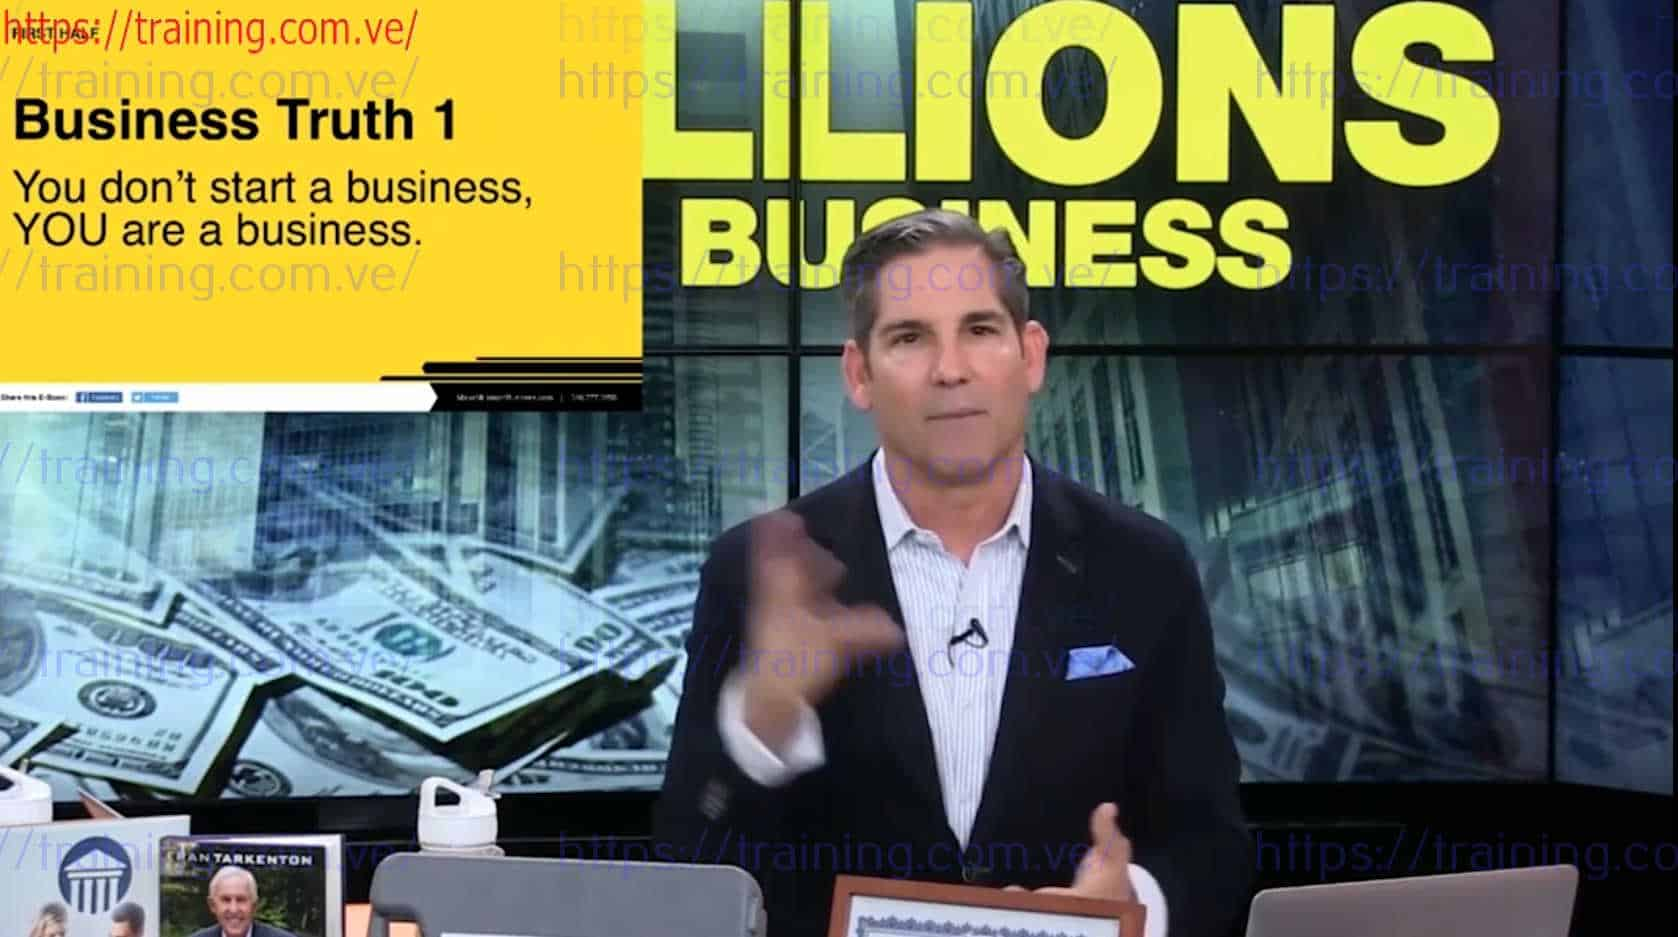 Business Builder Certification by Grant Cardone Free